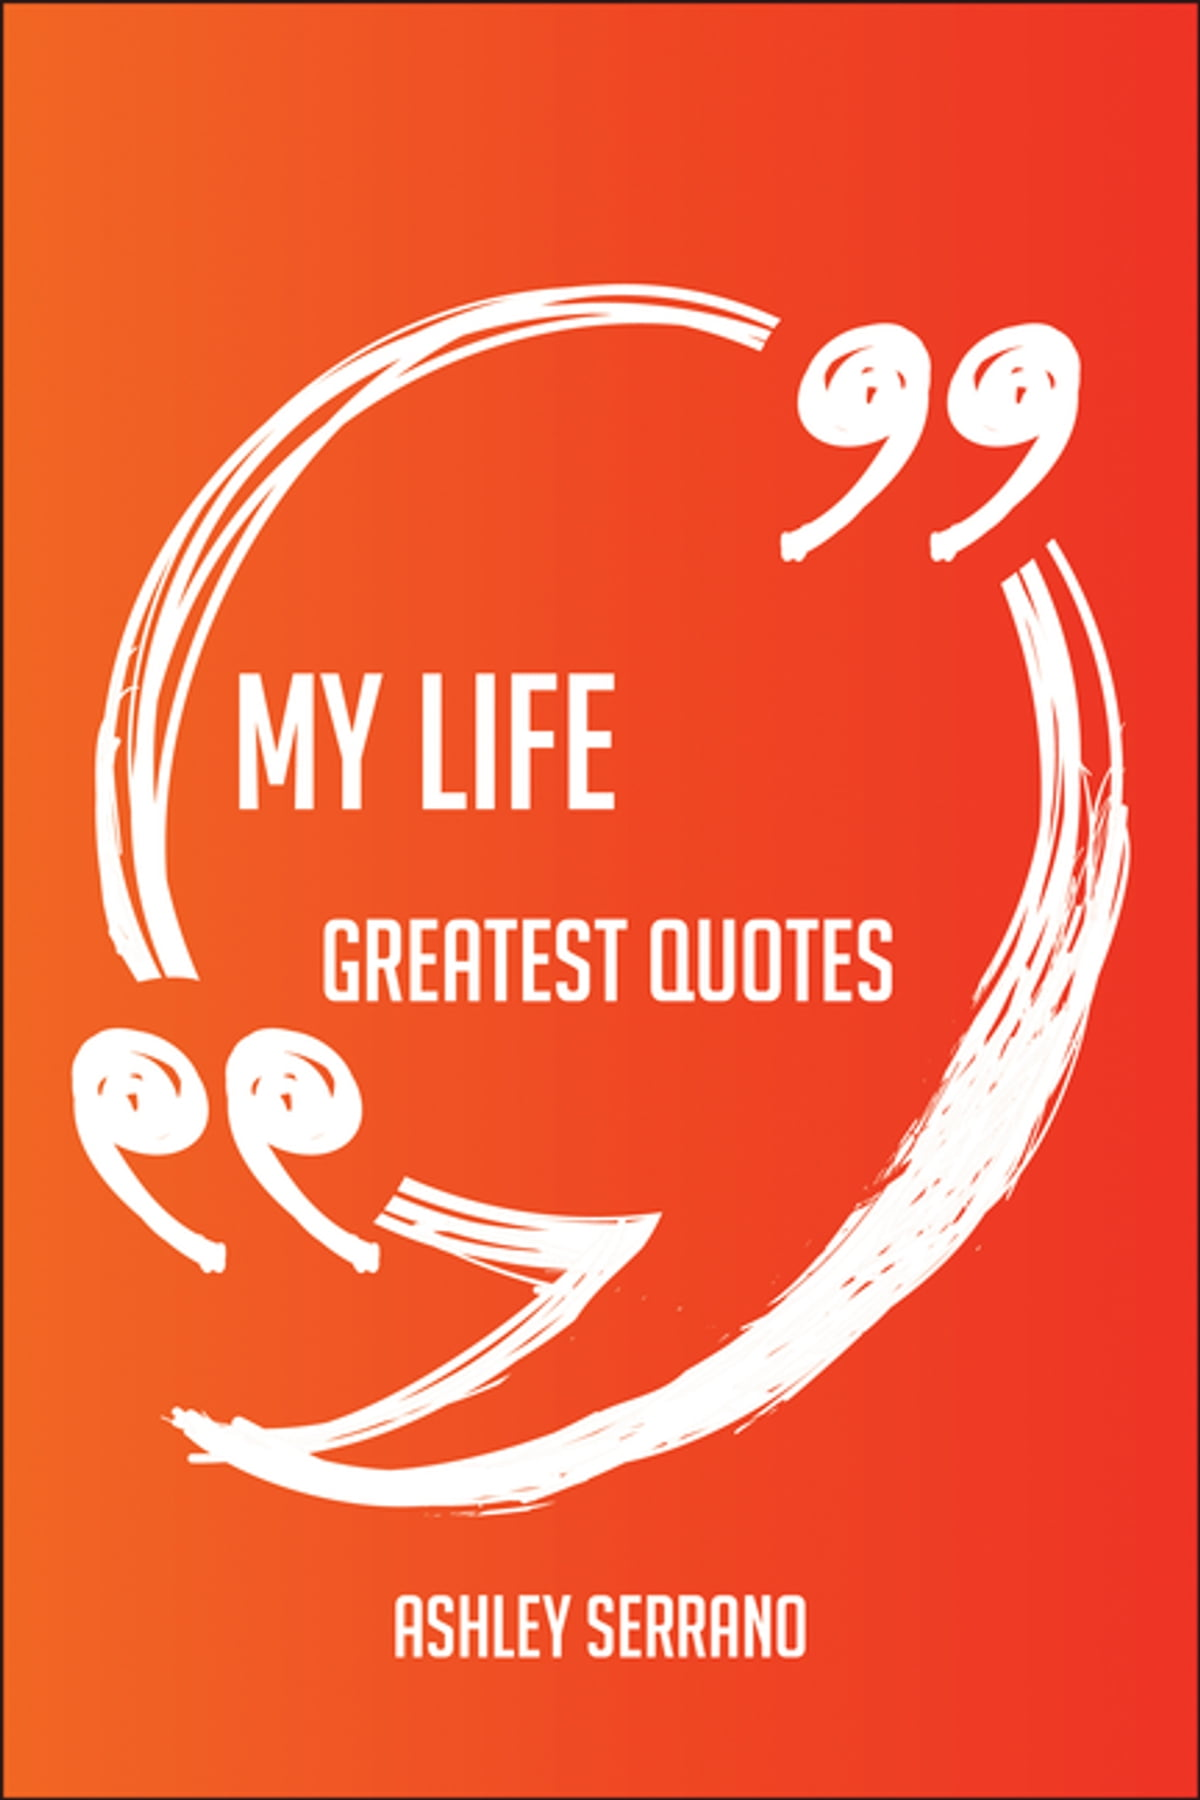 Long Quotes About Life My Life Greatest Quotes  Quick Short Medium Or Long Quotes